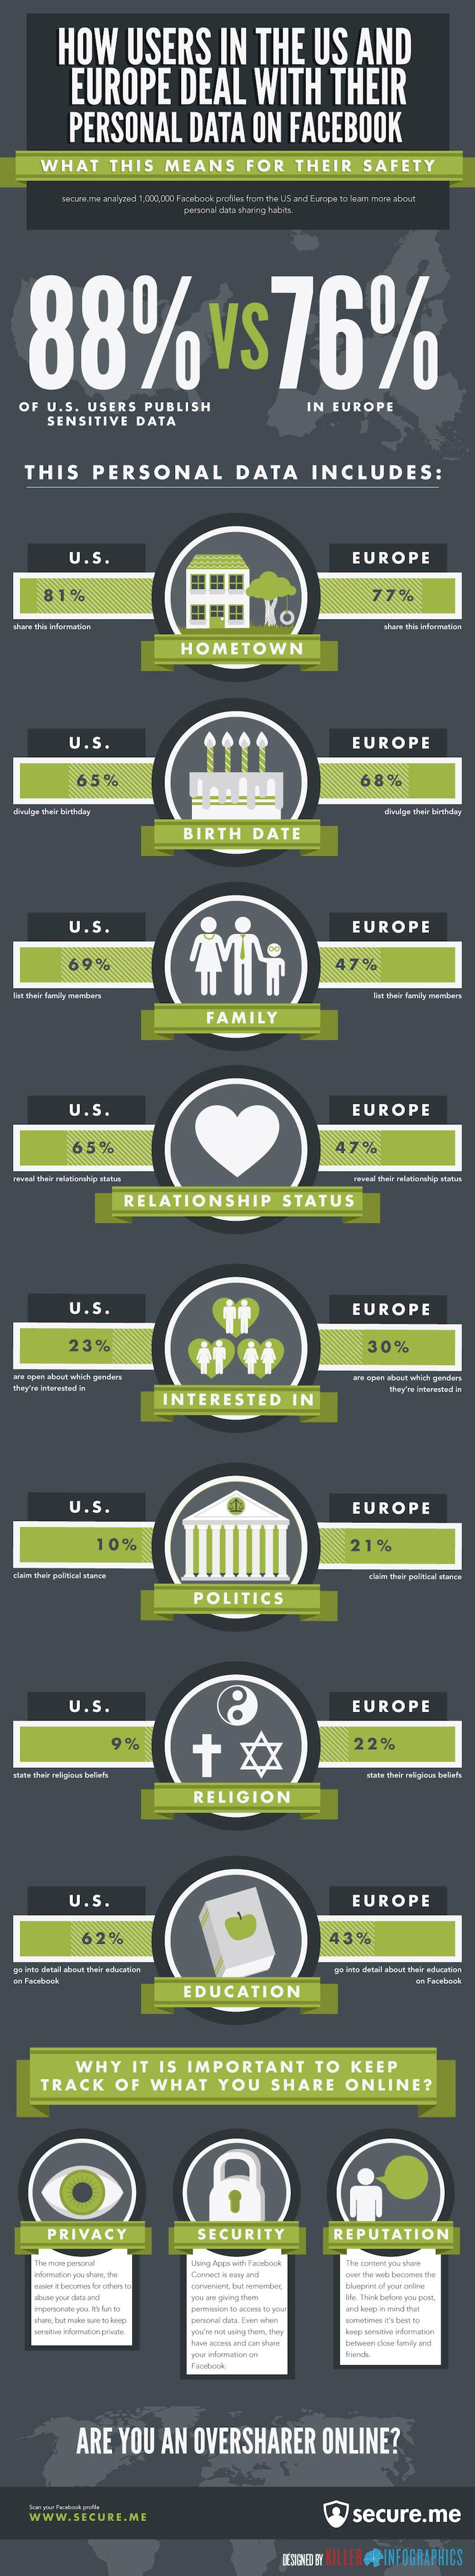 Infographic: How Users in the U.S. and Europe Deal With Their Personal  Data on Facebook